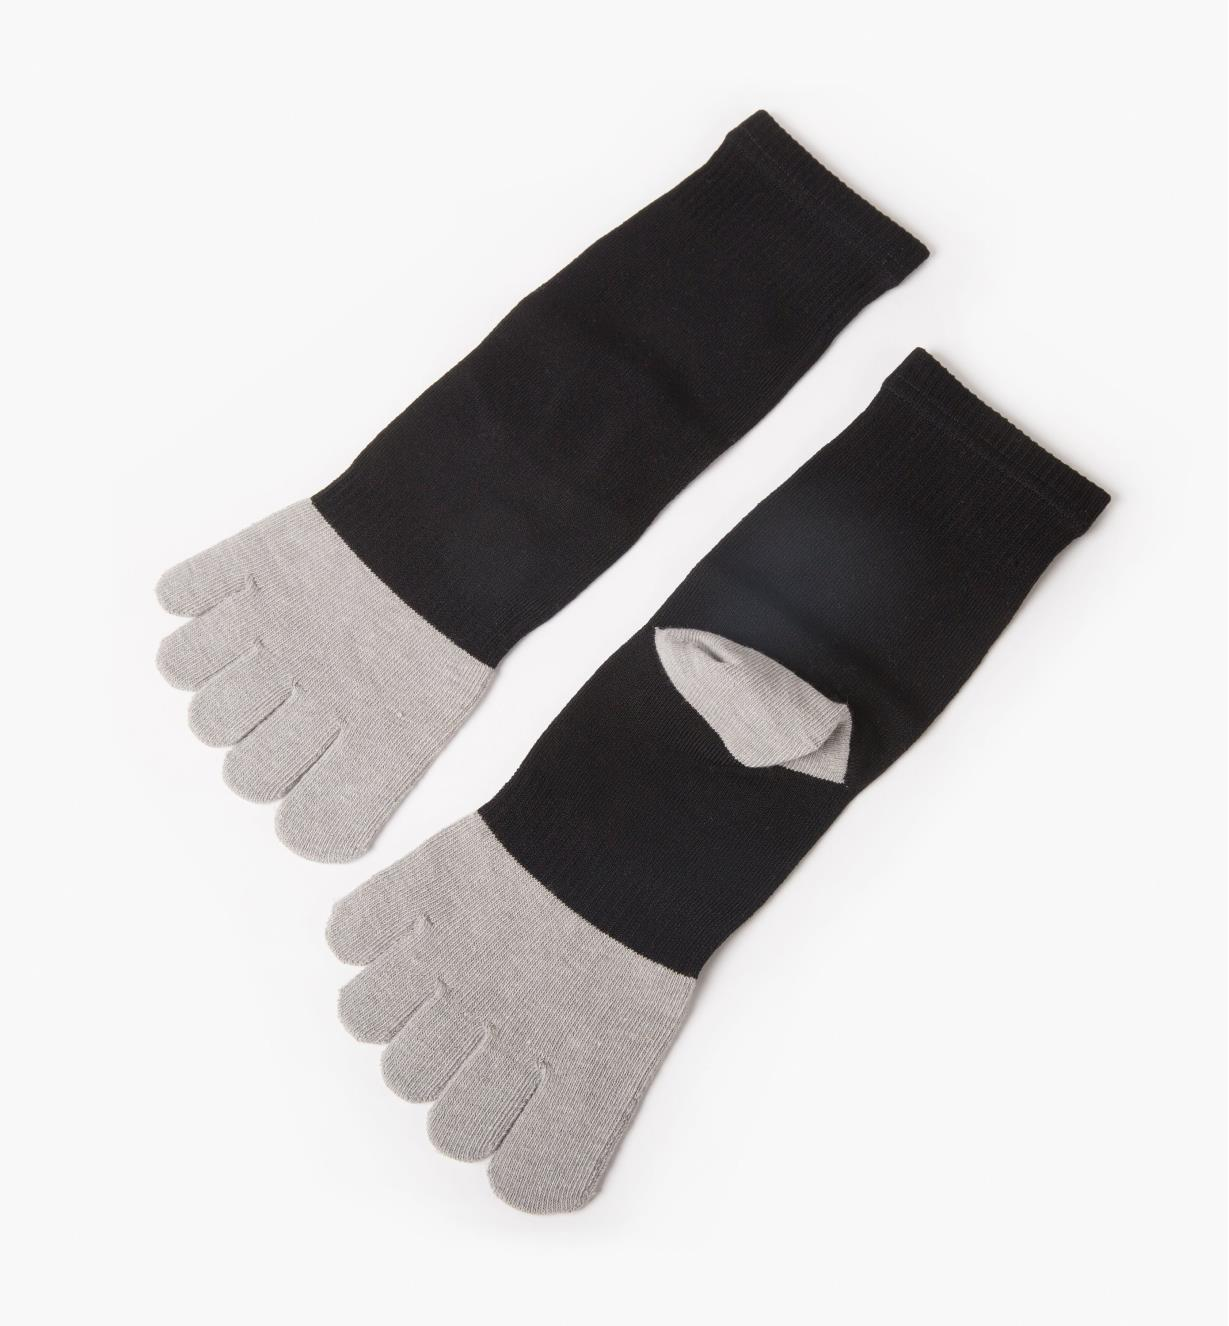 Black/Gray Toe Socks